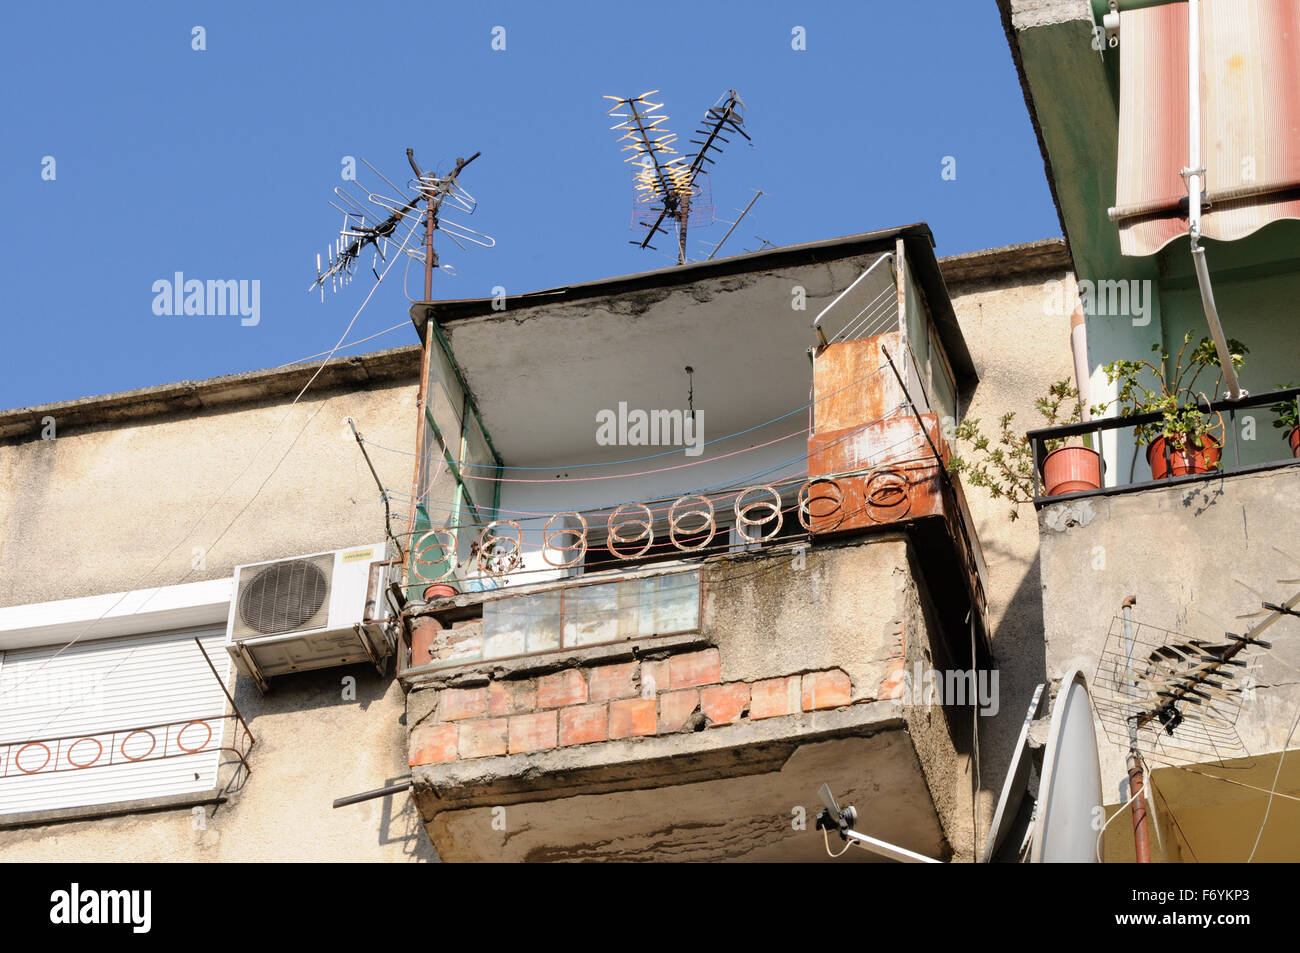 An insecure looking balcony on an old building. Tirana, Albania. - Stock Image